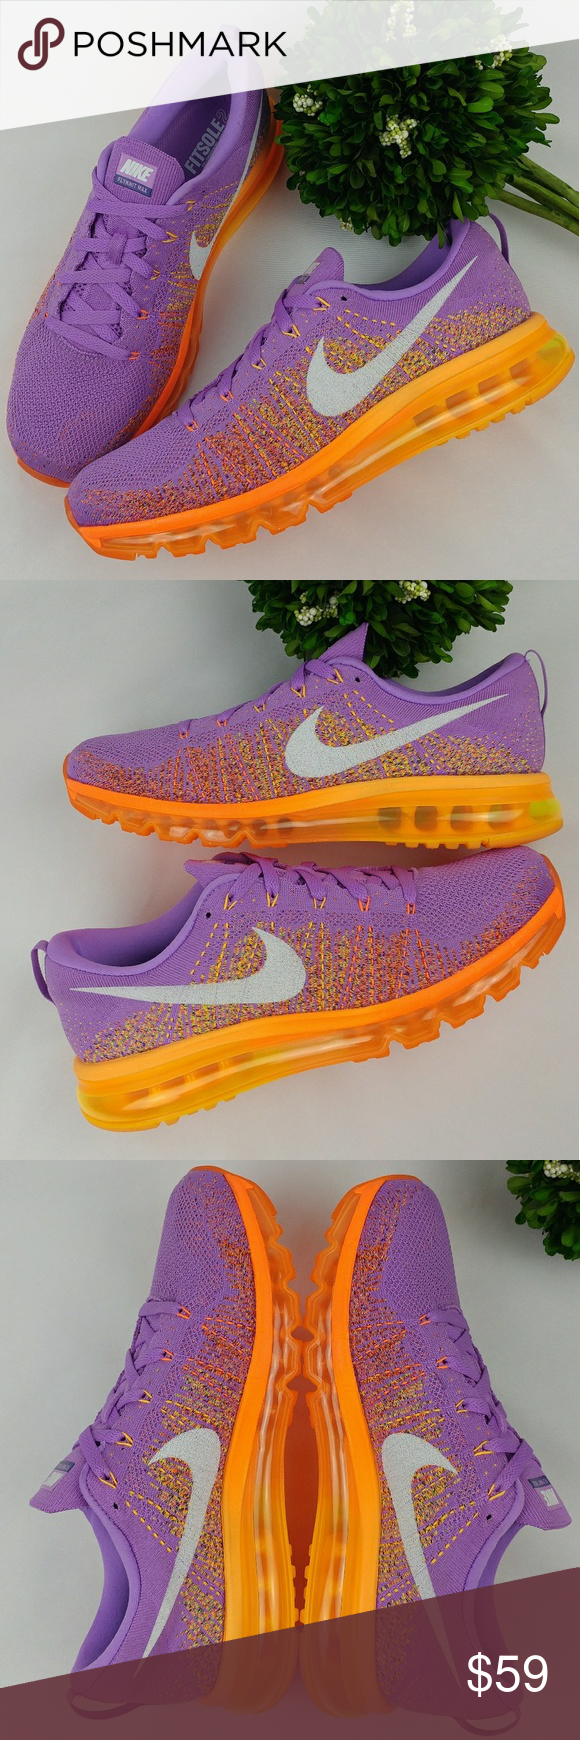 new style ecaa2 aea5d Nike Flyknit Air Max Womens shoes Atomic Purple Nike Flyknit Air Max Womens  Sneakers Atomic Purple White - Total Orange Feature Flyknit technology on  the ...